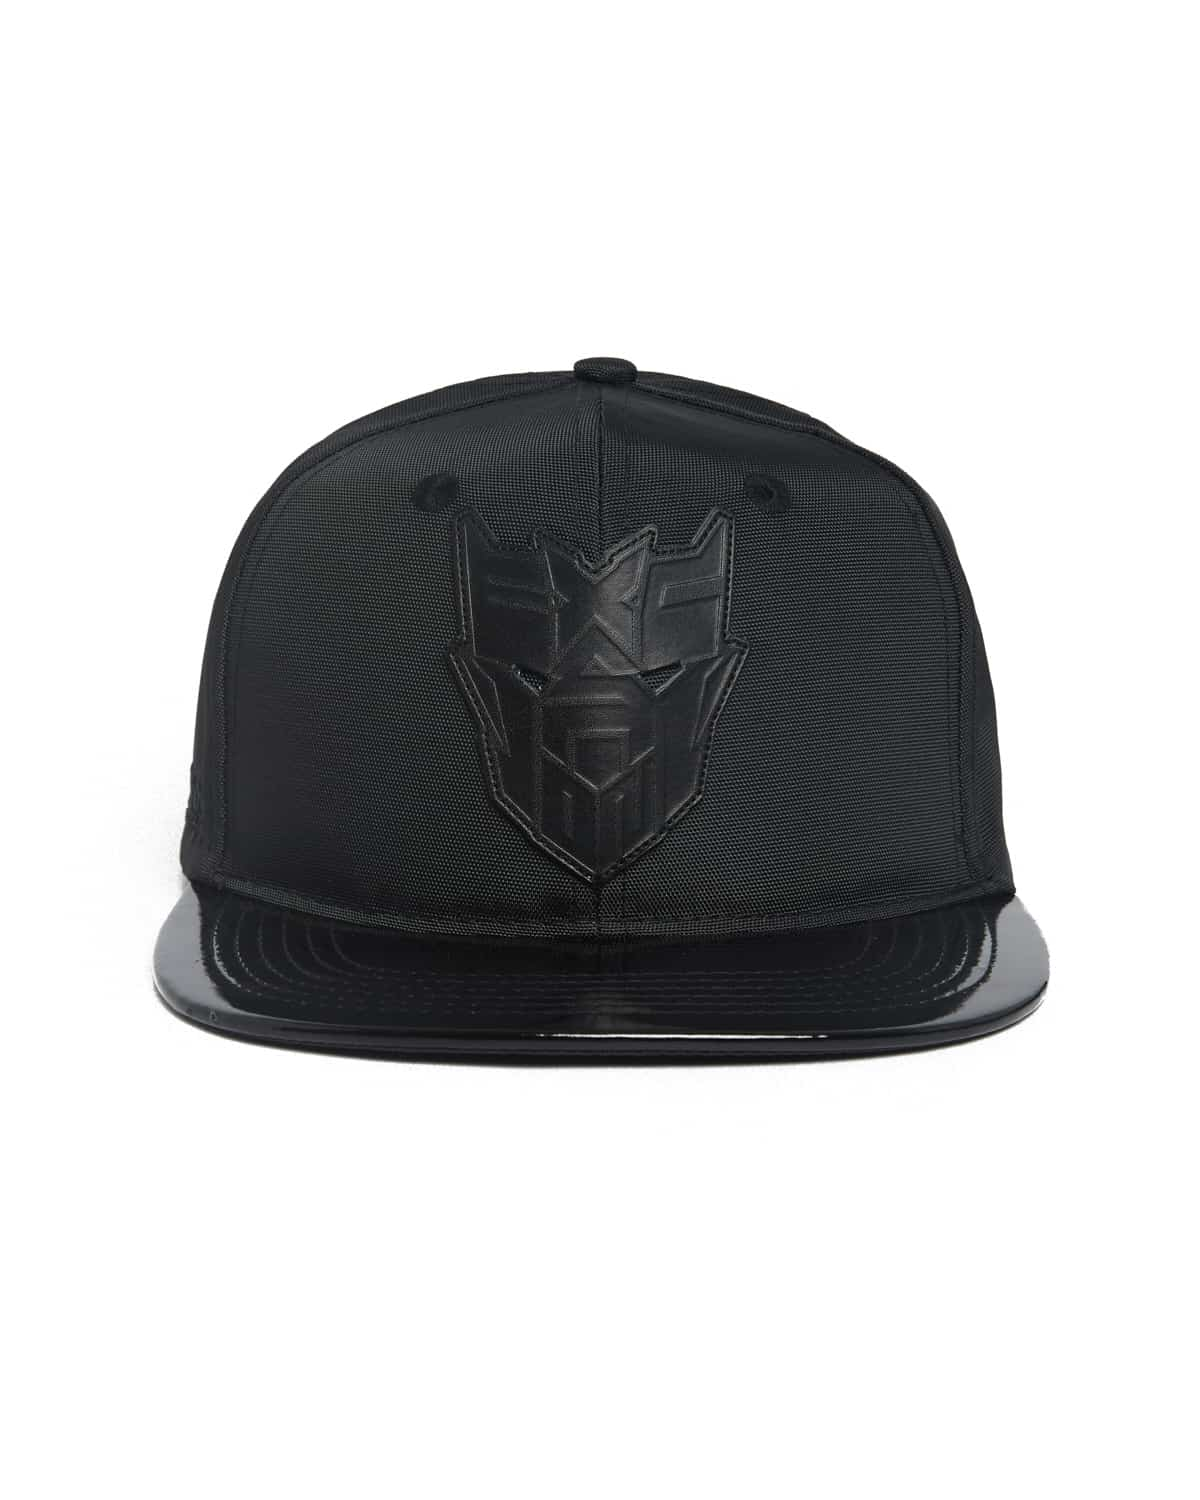 Excision 'Decepticon' Patent Leather Visor Ballistic Snapback - Black